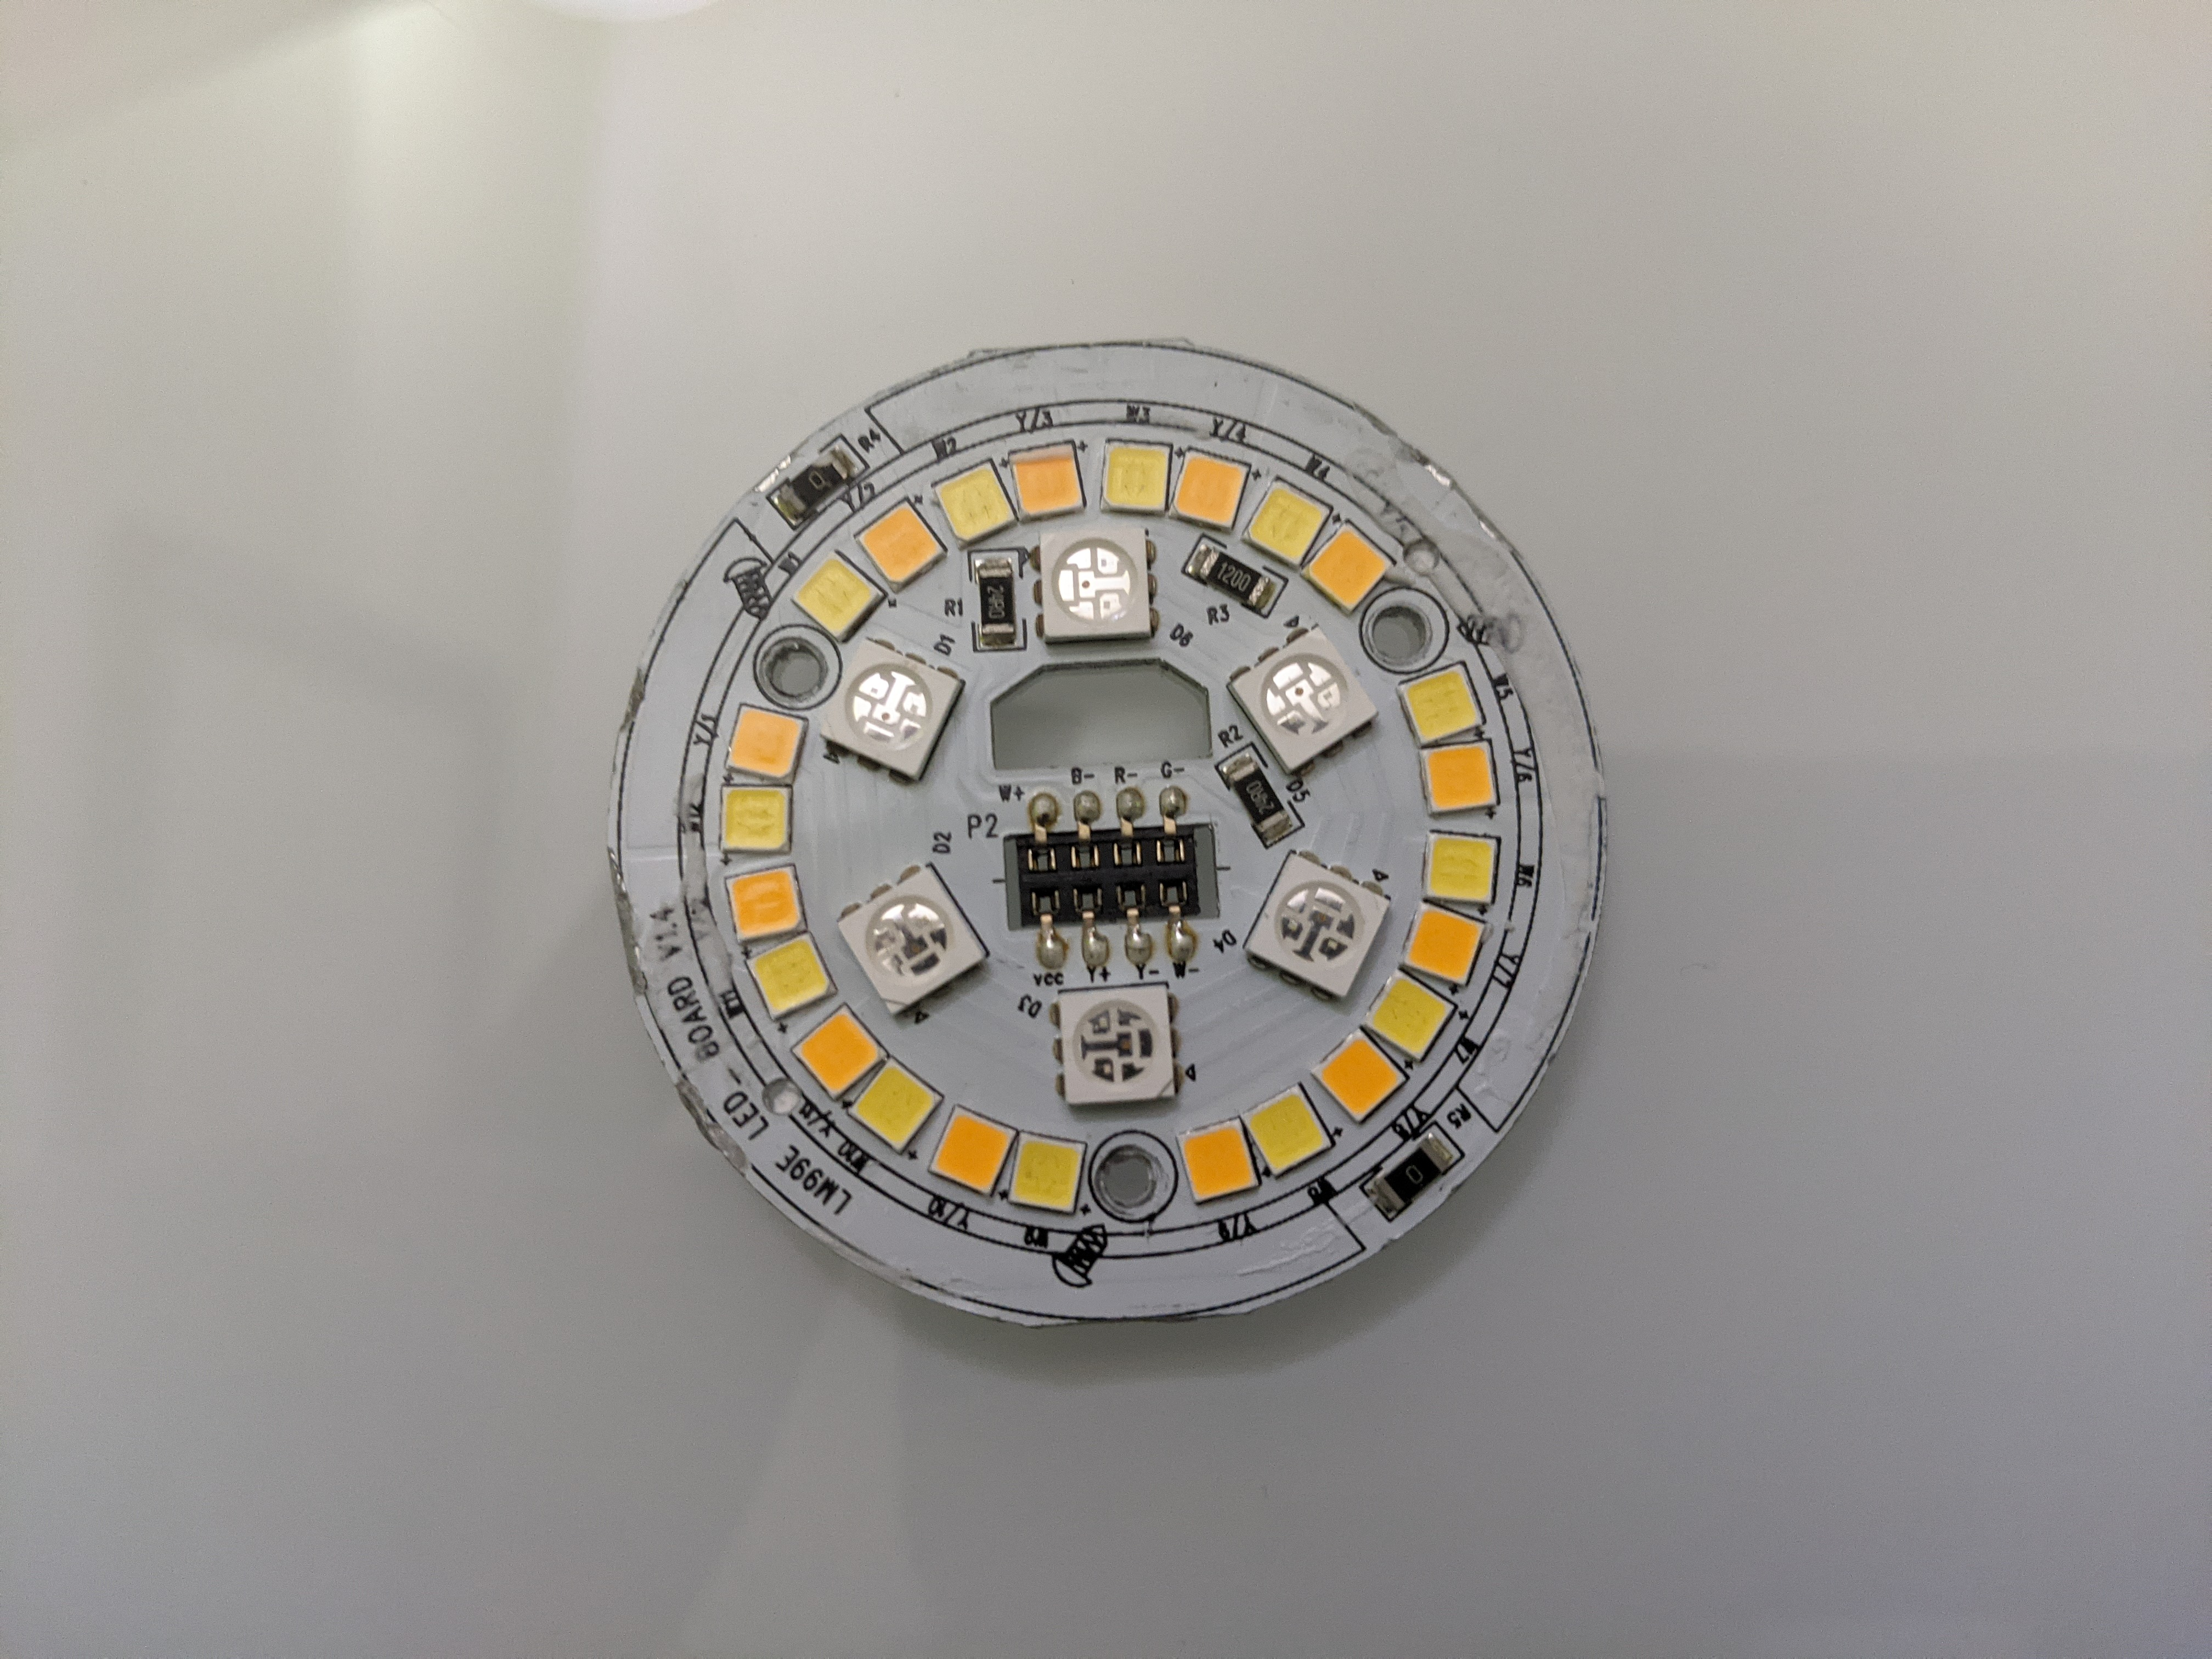 Top view of LED board